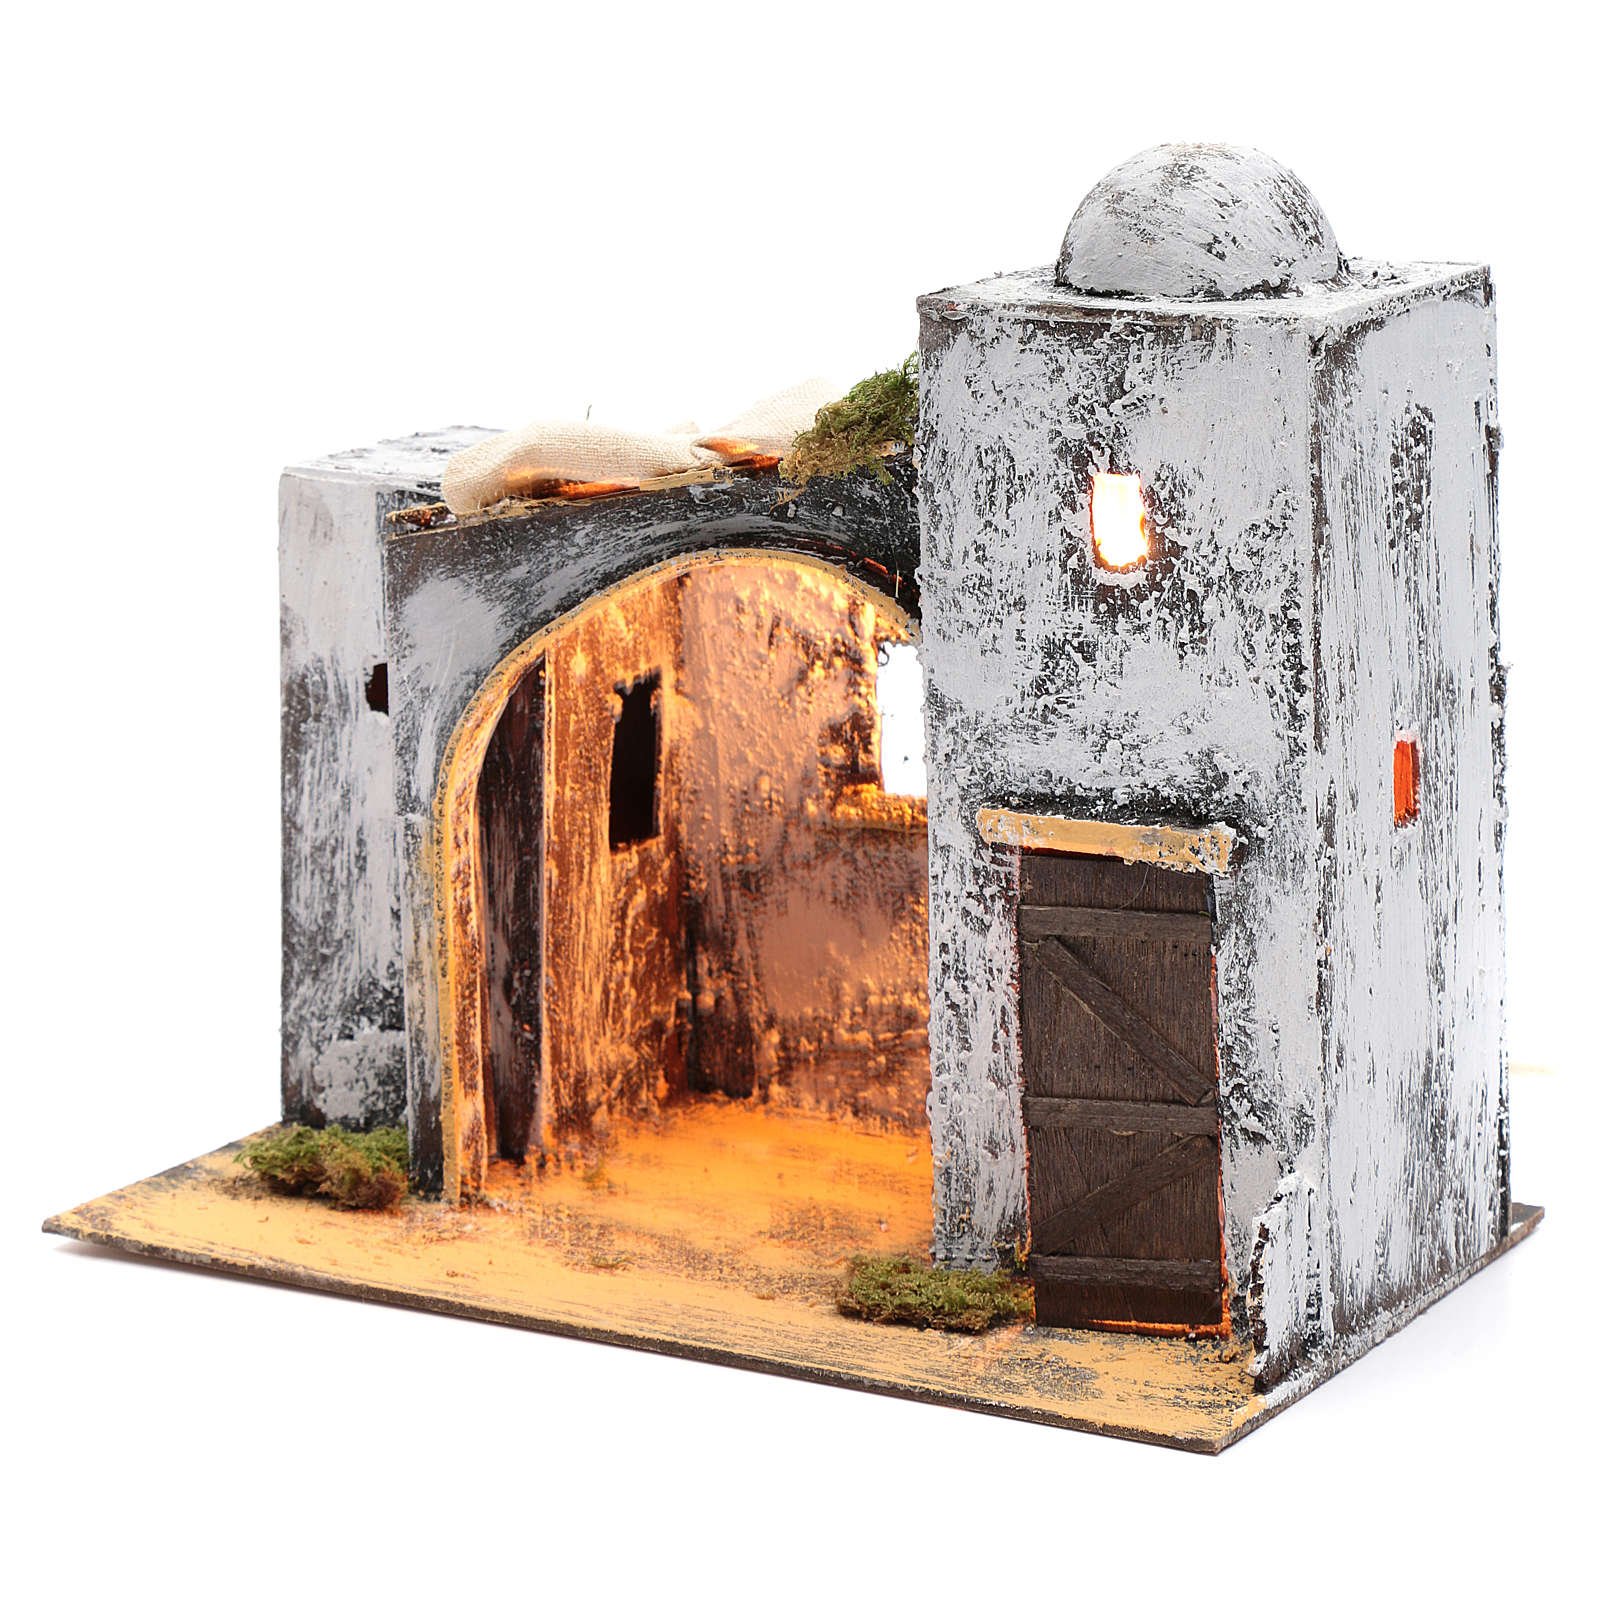 Neapolitan nativity scene Arabian style setting with door and hut 30x30x20 cm 4